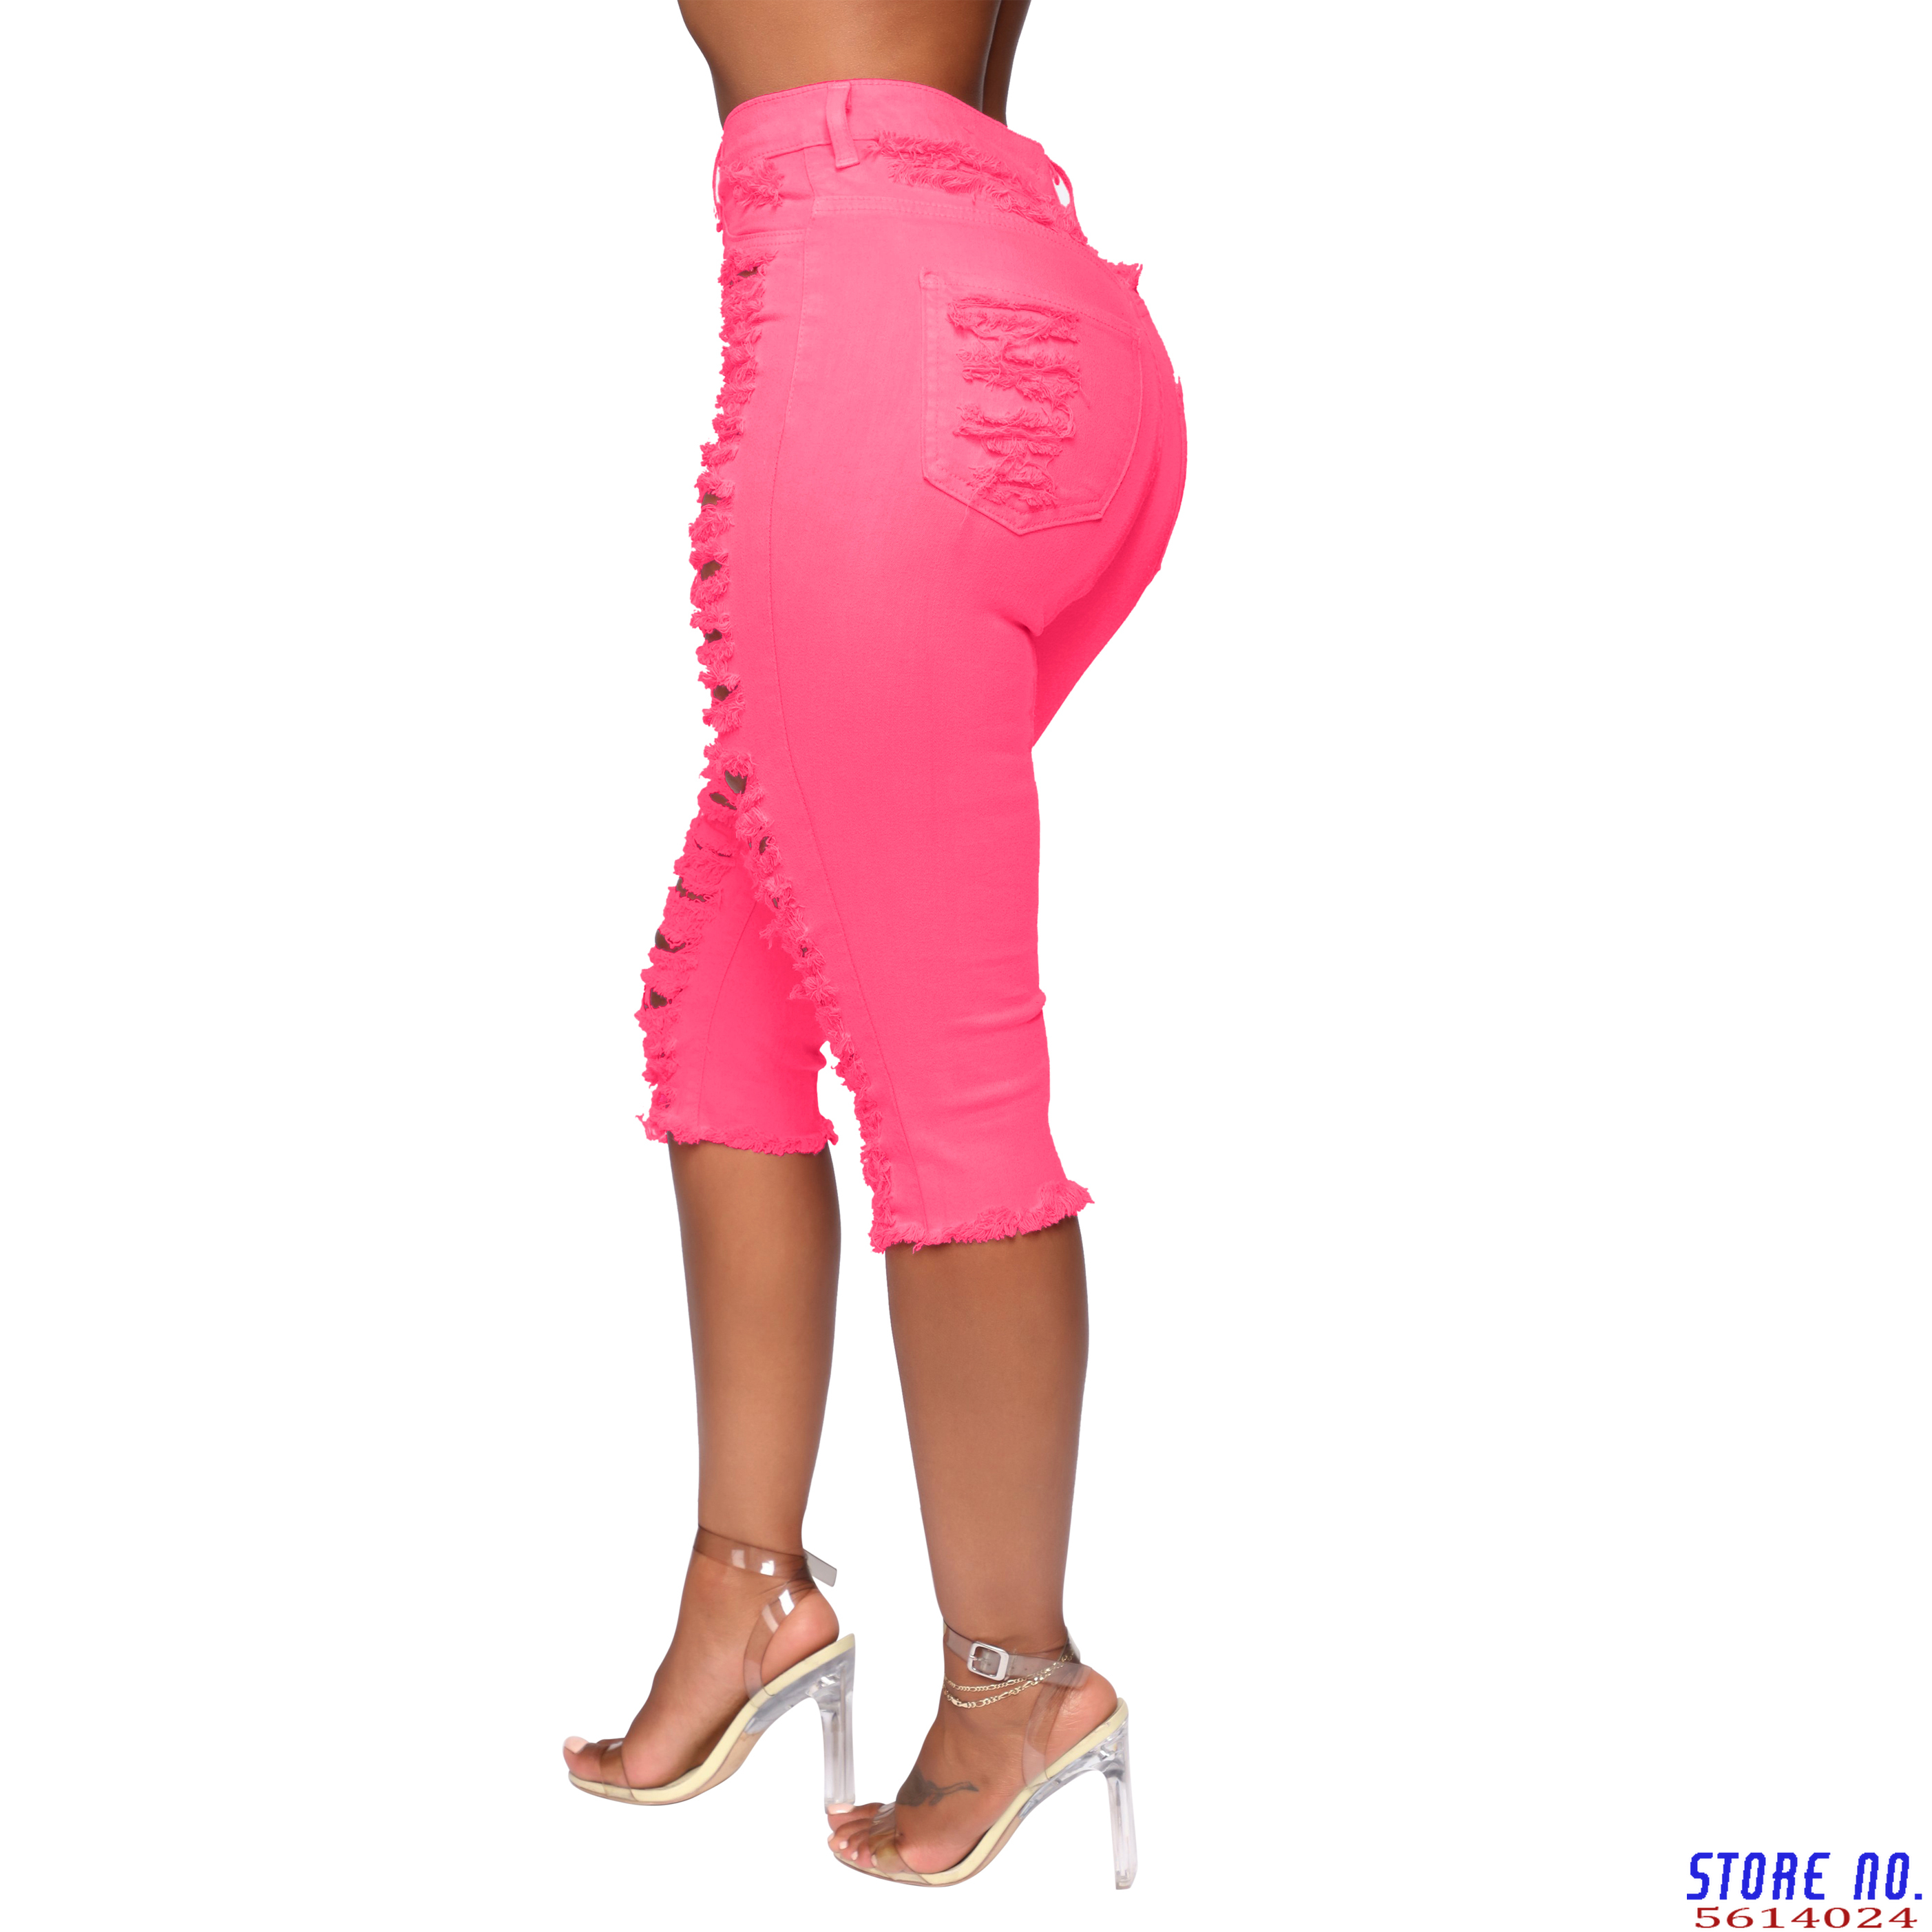 Denim Skinny Hole Jeans For Women Knee Length Capris Pants Femme Pink Sexy Ripped Fashion Bodycon Jeans Vestidos